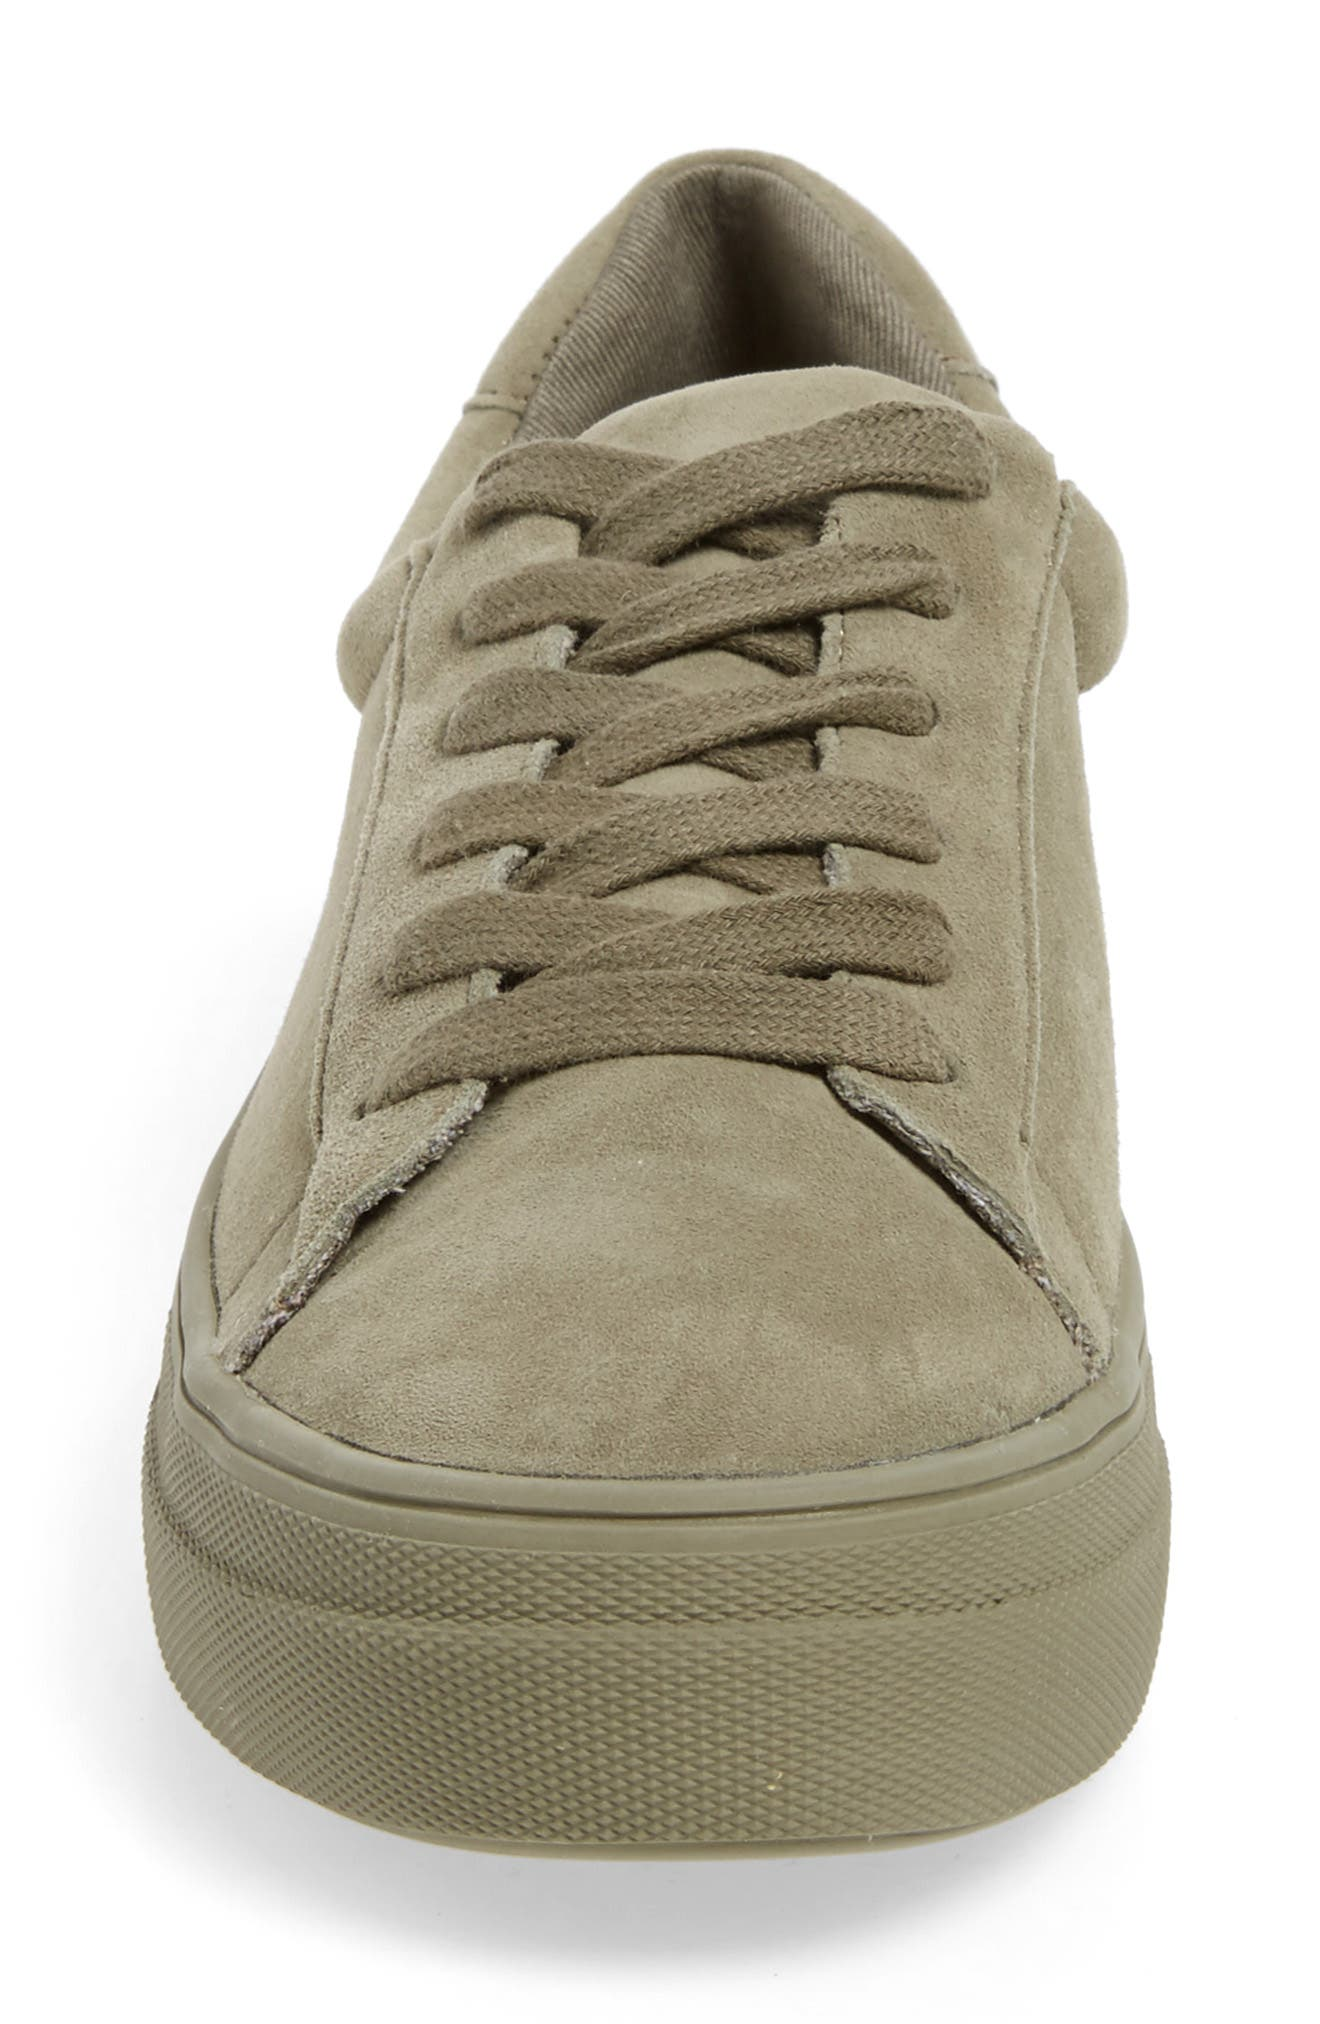 Gisela Low Top Sneaker,                             Alternate thumbnail 4, color,                             Olive Suede